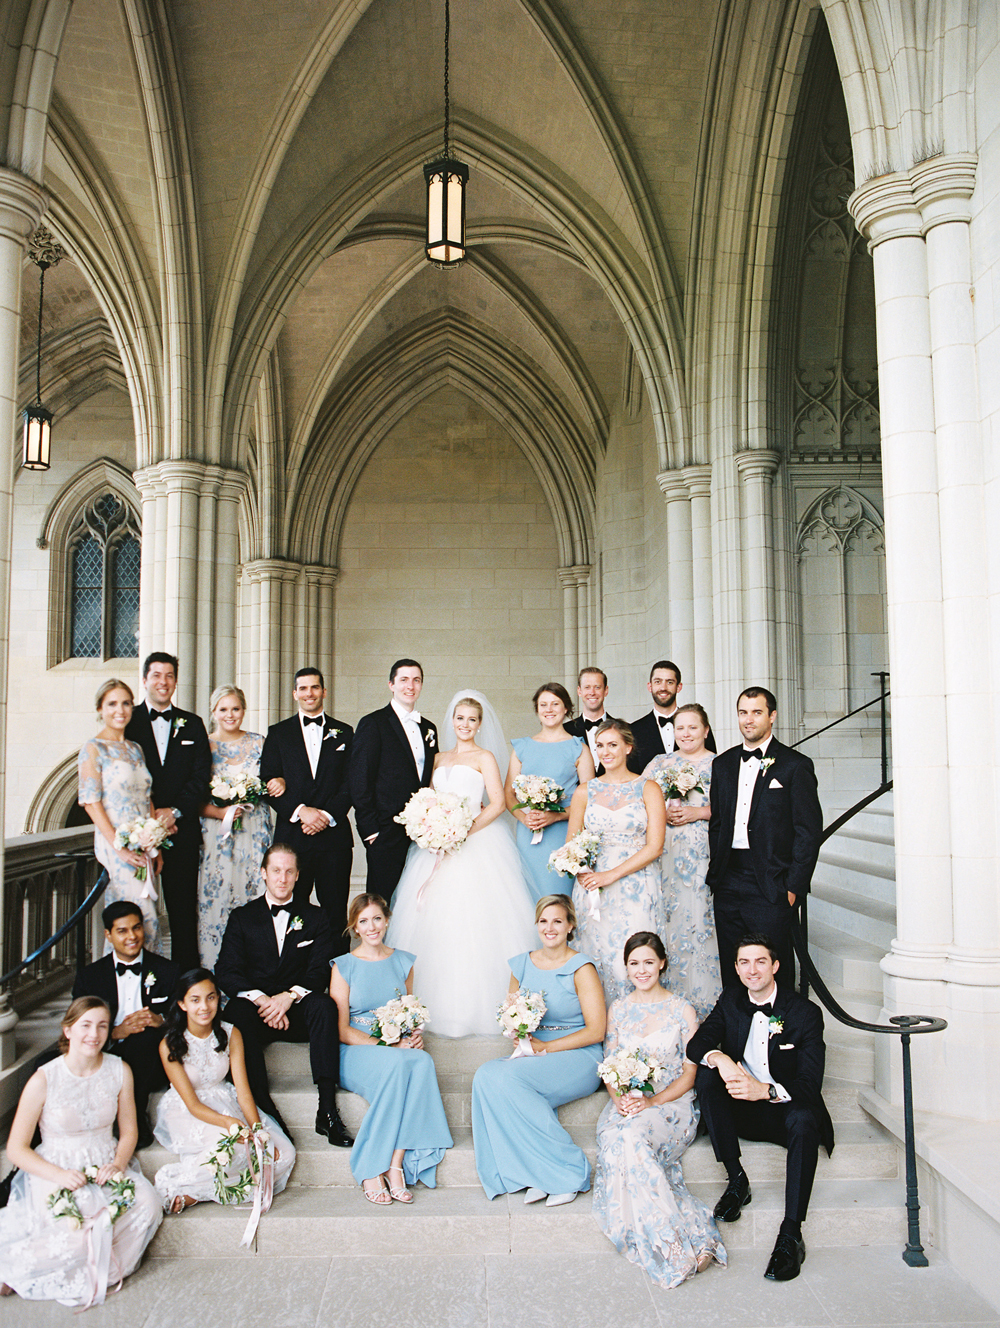 bride and groom with bridal party at wedding venue